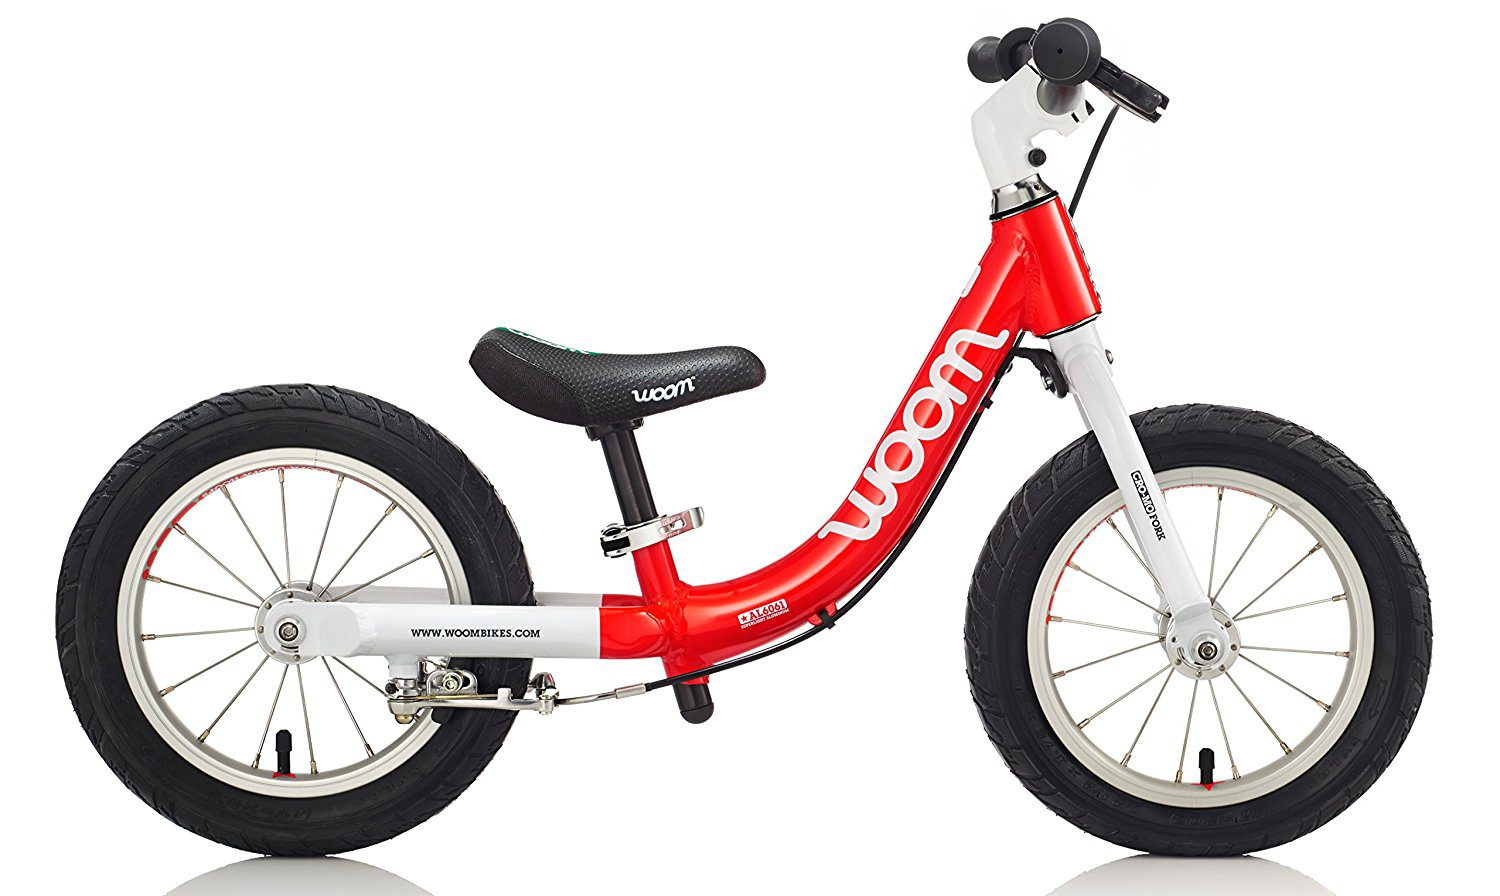 ac41adbd37c The 5 Best Toddler Balance Bikes. Woom 1. Woom 1 Balance Bike